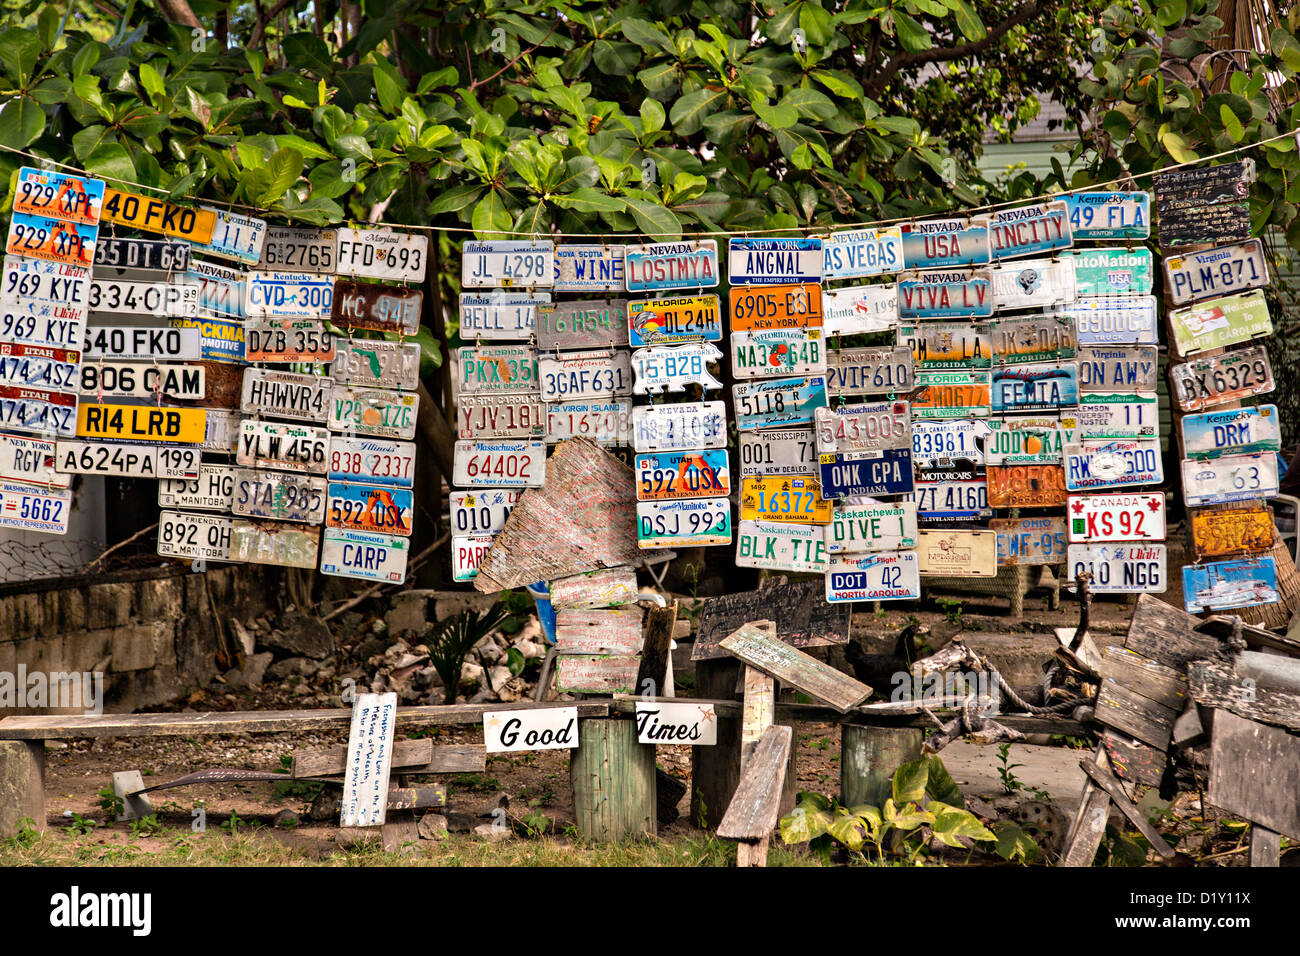 Quirky signs and old license plates at Uncle Ralph's Aura Corner, Dunmore Town, Harbour Island, The Bahamas. - Stock Image